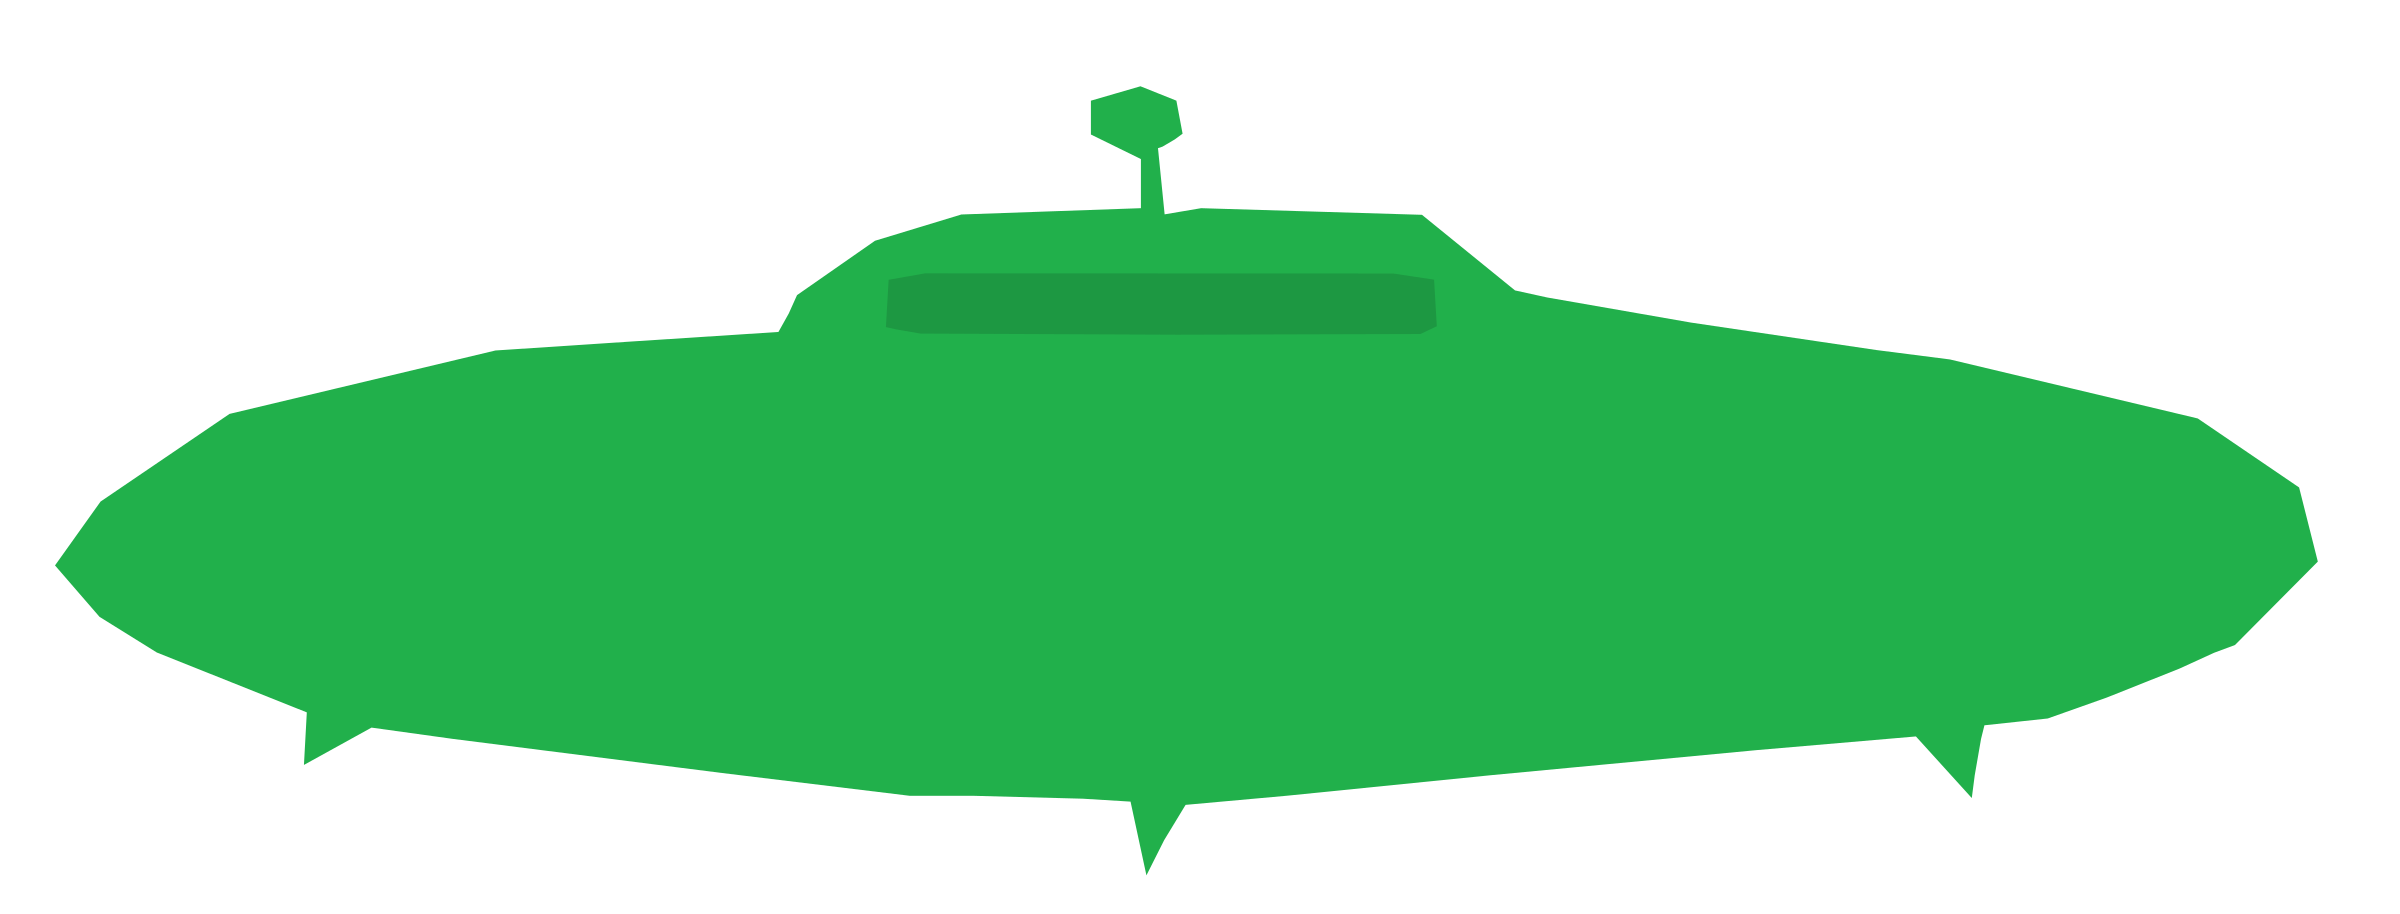 Green refixed icons png. Ufo clipart colorful